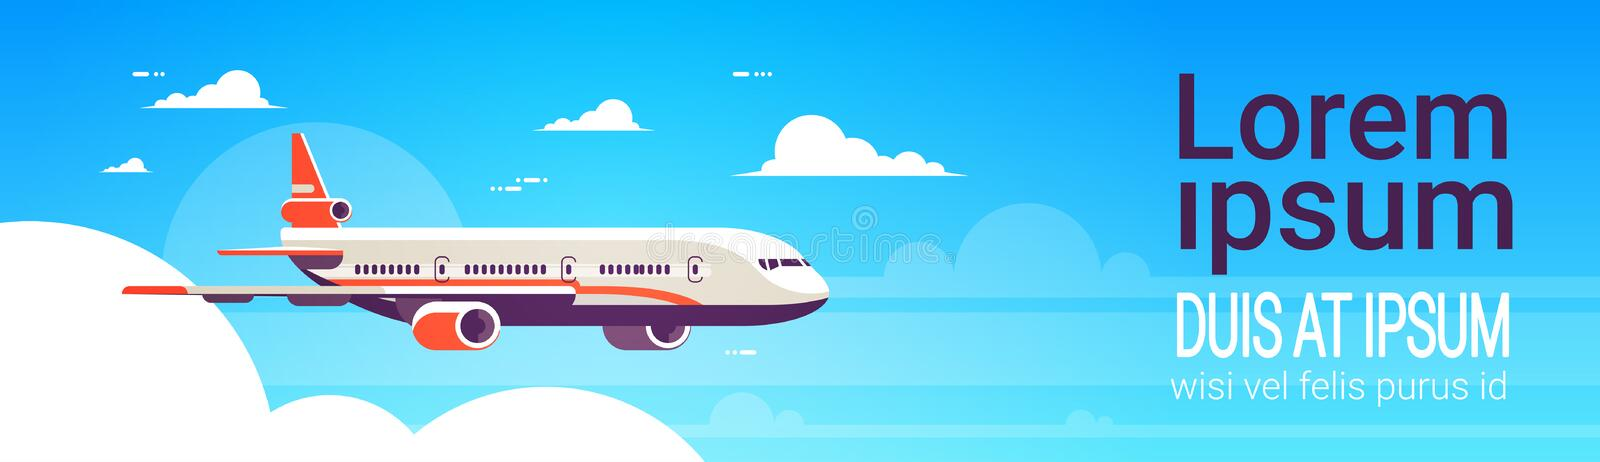 Flying airplane express delivery shipping international transportation concept sky background flat horizontal banner royalty free illustration